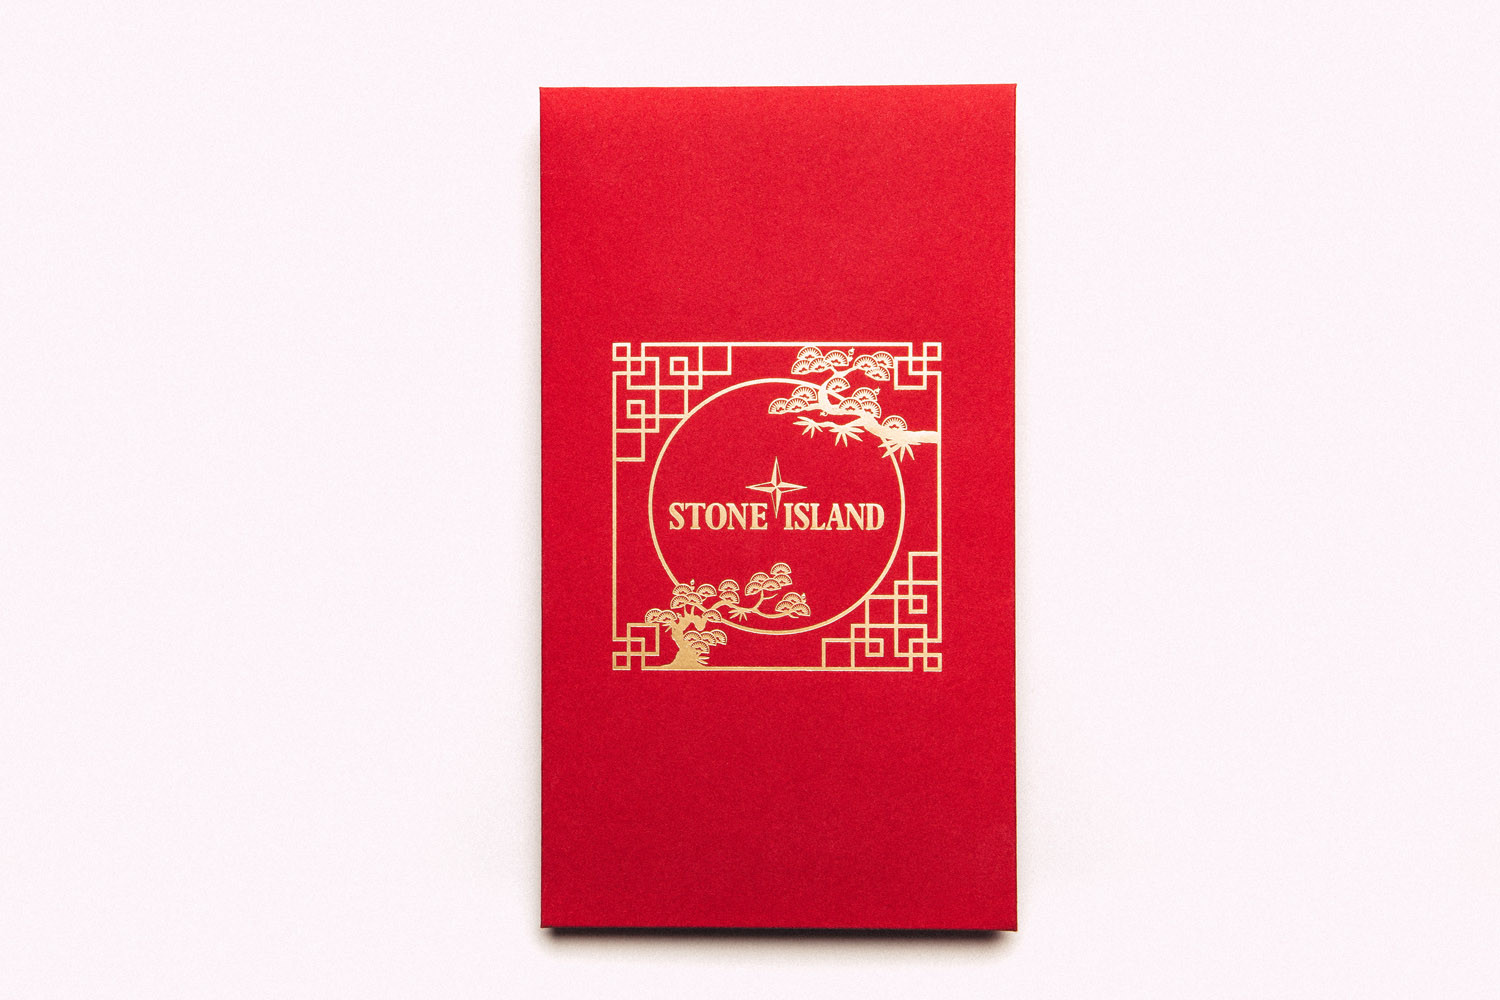 Exclusive Red Envelope Designs featuring Mastermind WORLD, Stone Island and Fragment Design